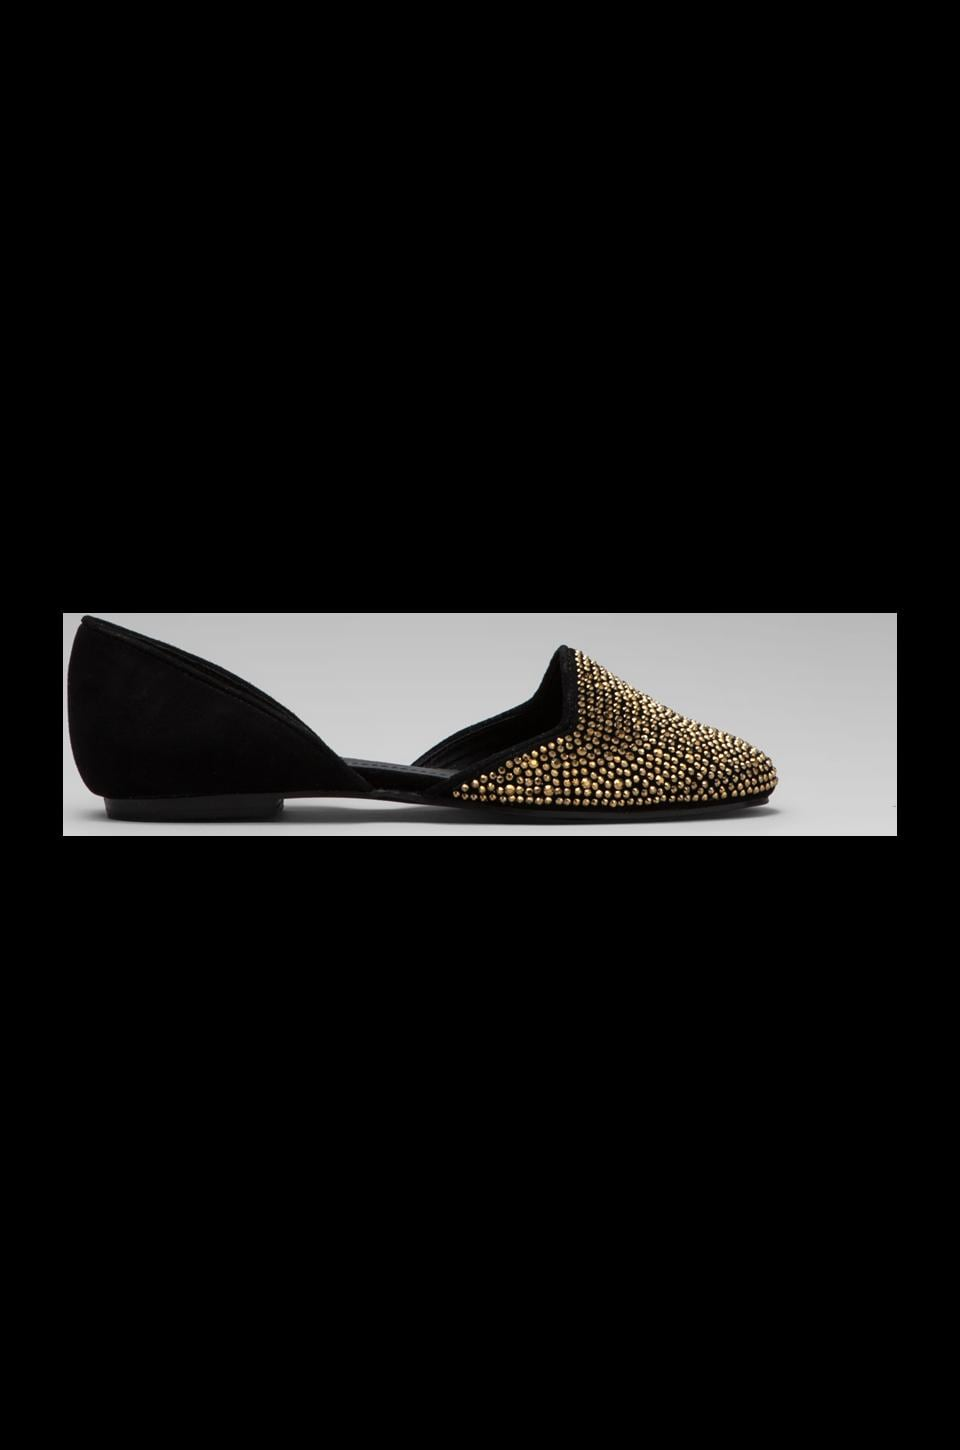 Steve Madden Vamp Flat in Black/Gold